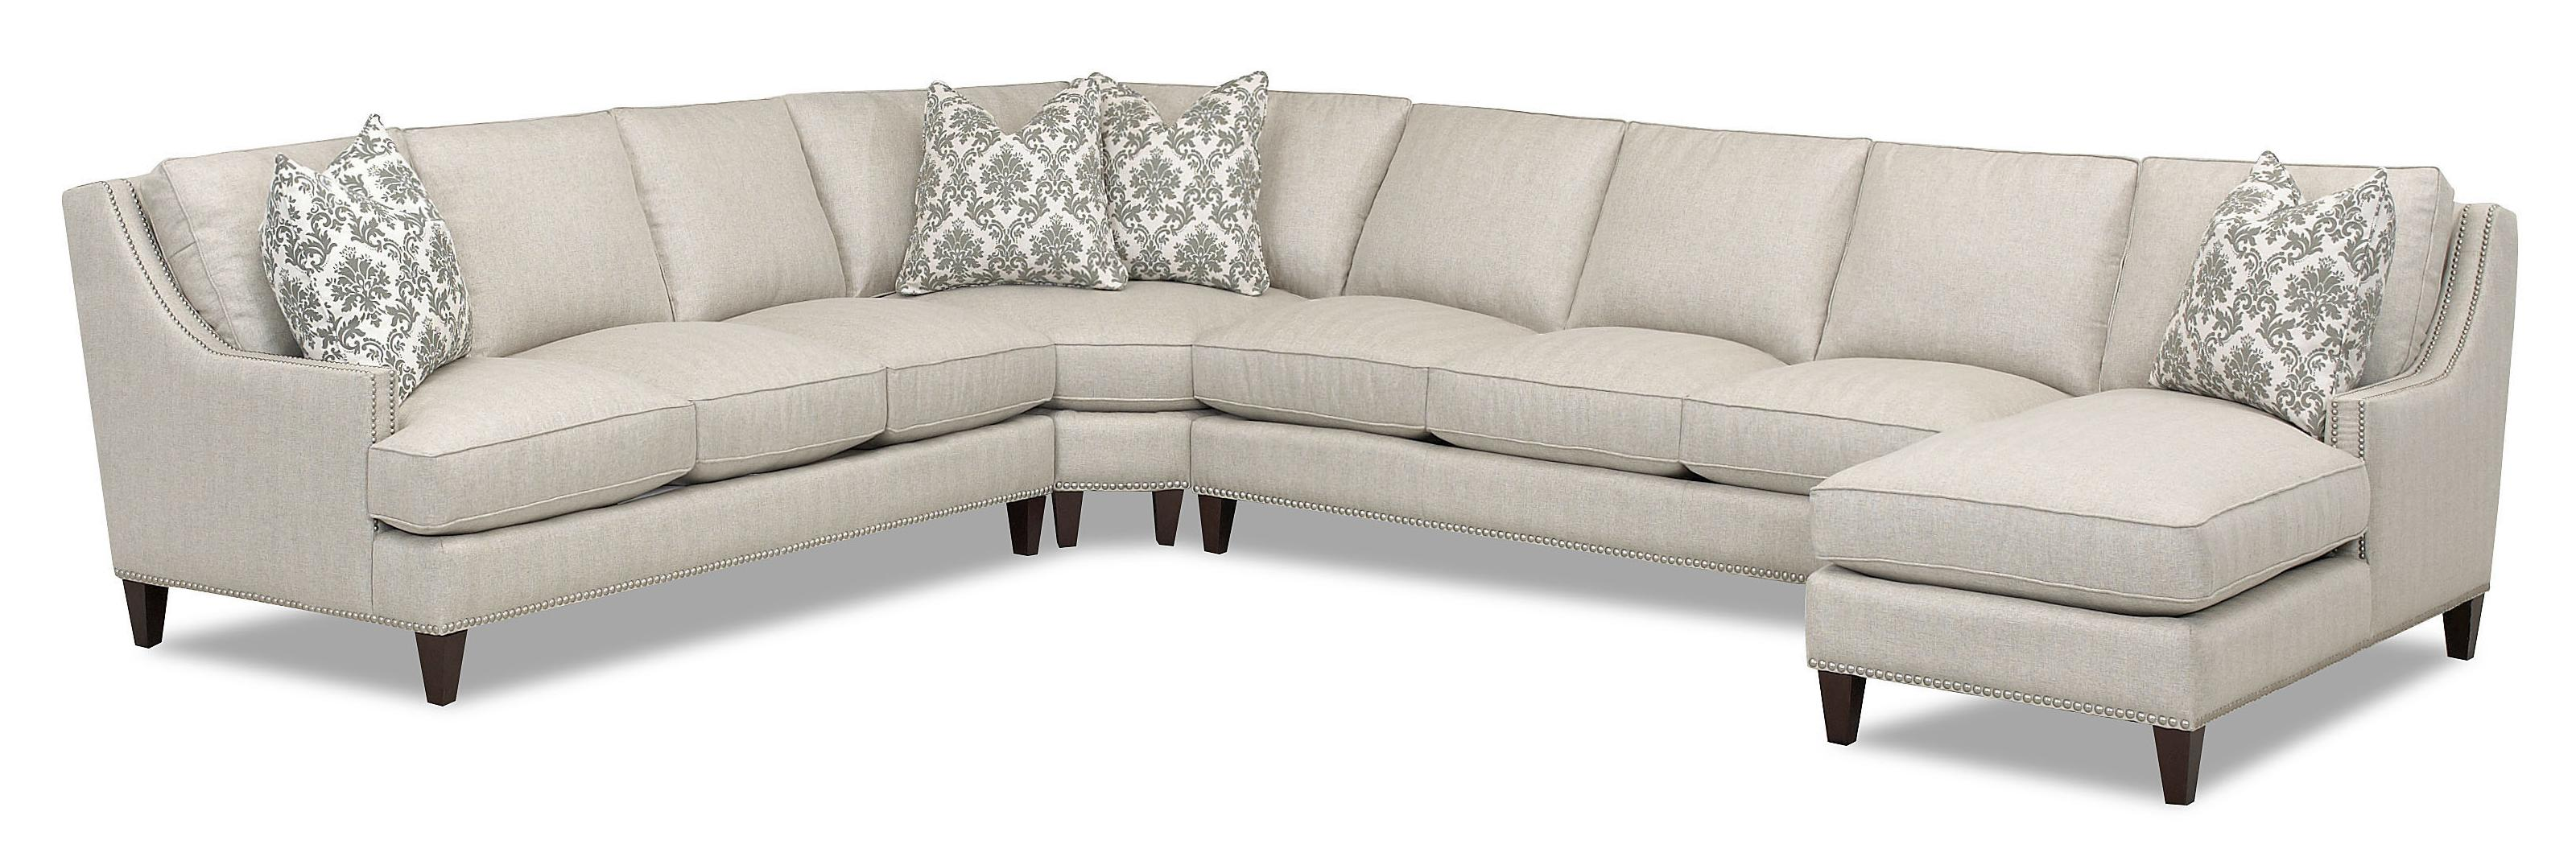 Transitional 4 Piece Sectional with Chaise by Klaussner